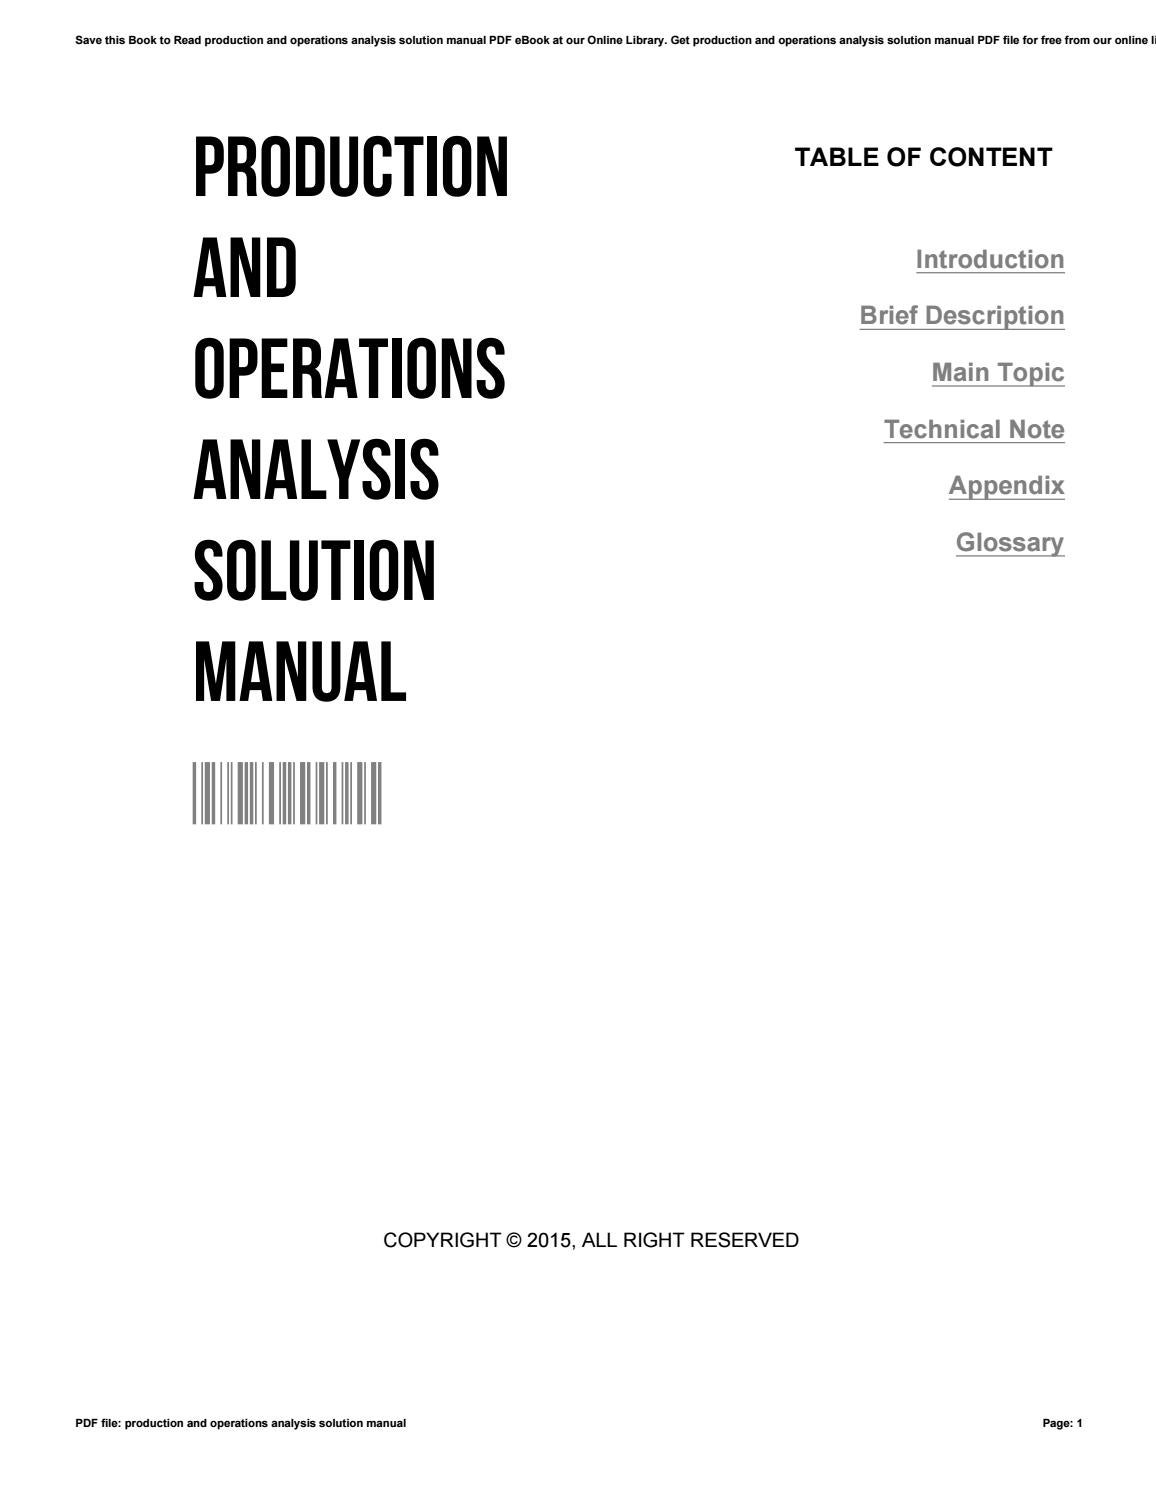 Production and operations analysis solution manual by